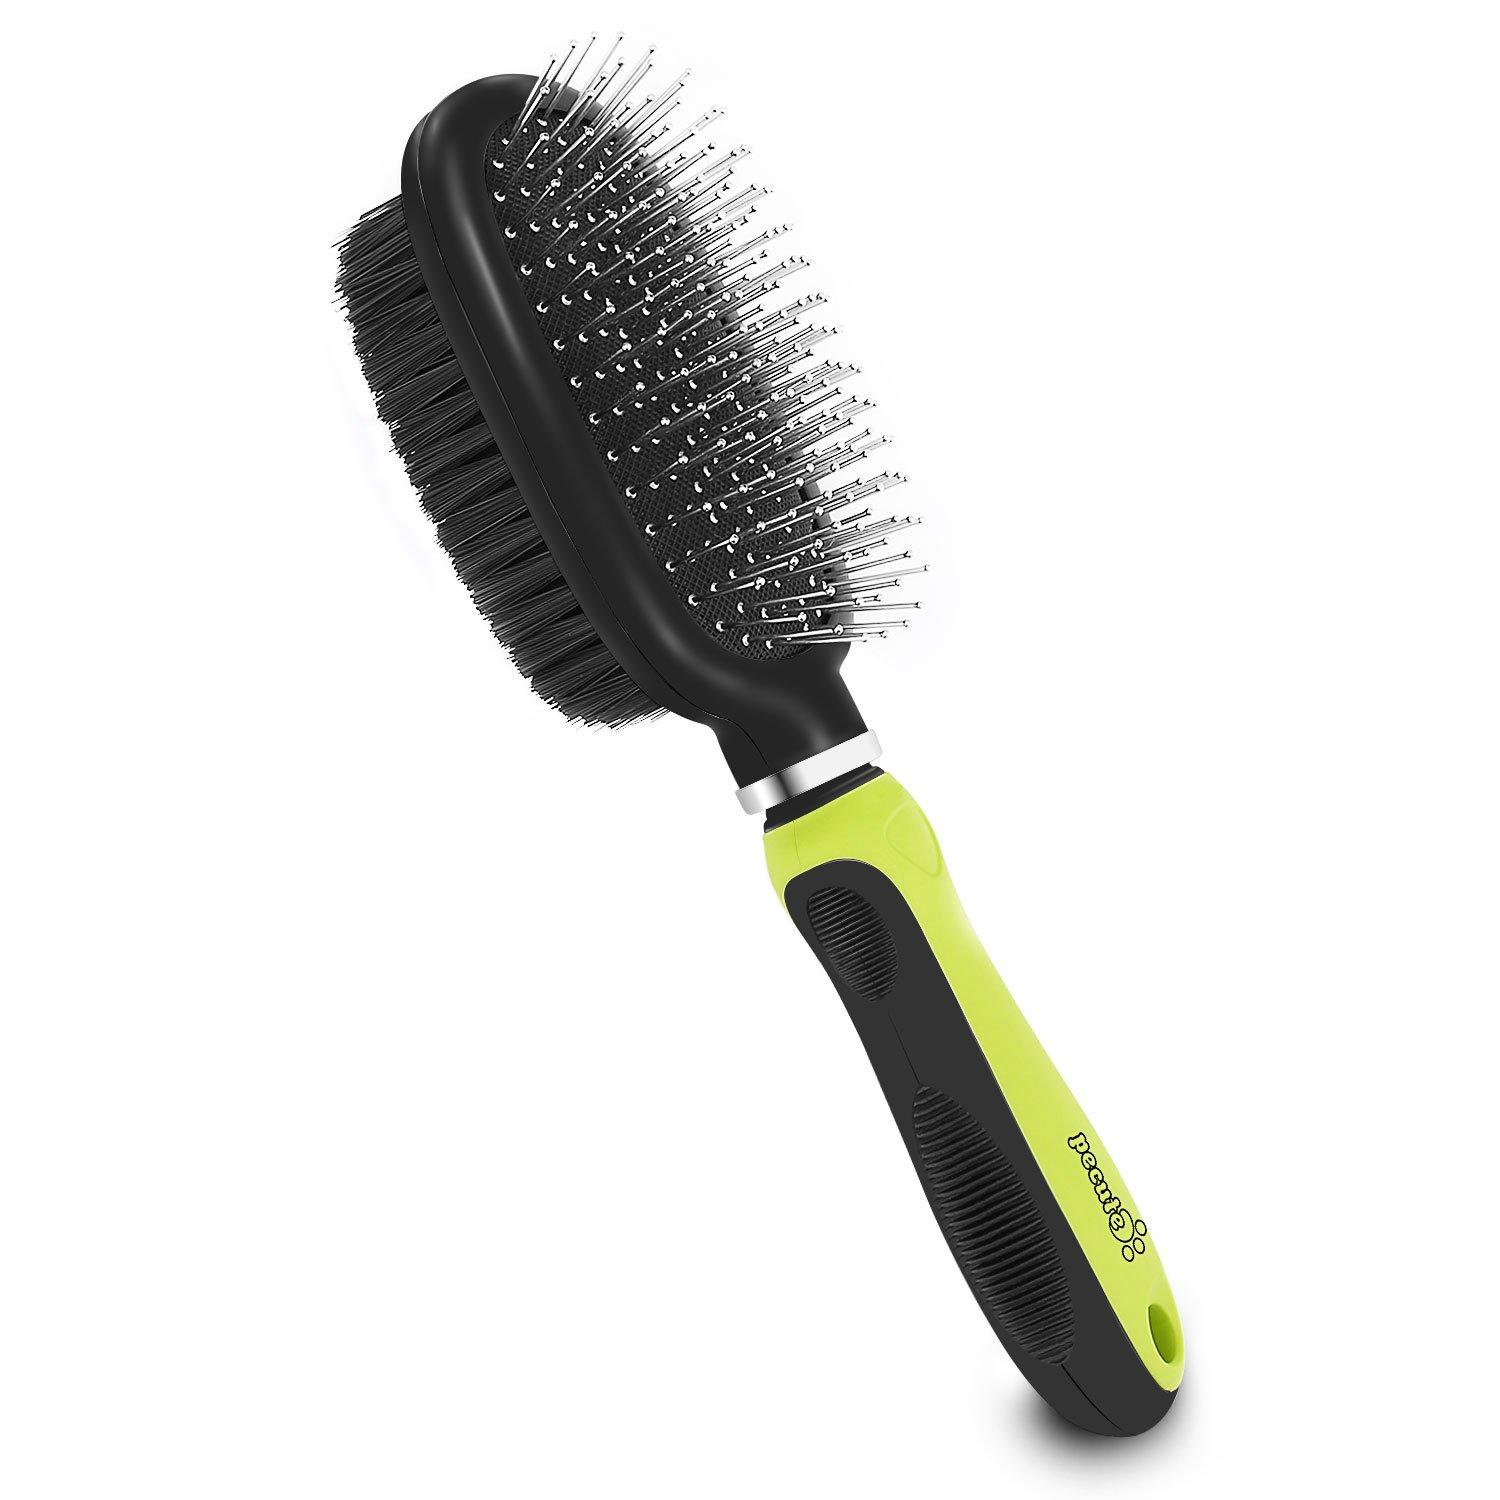 Pecute Dematting Comb Grooming Tool Kit for Dog & Cat Double Sided Blade Rake Comb with Grooming Brush (Double Sided Grooming Brush)